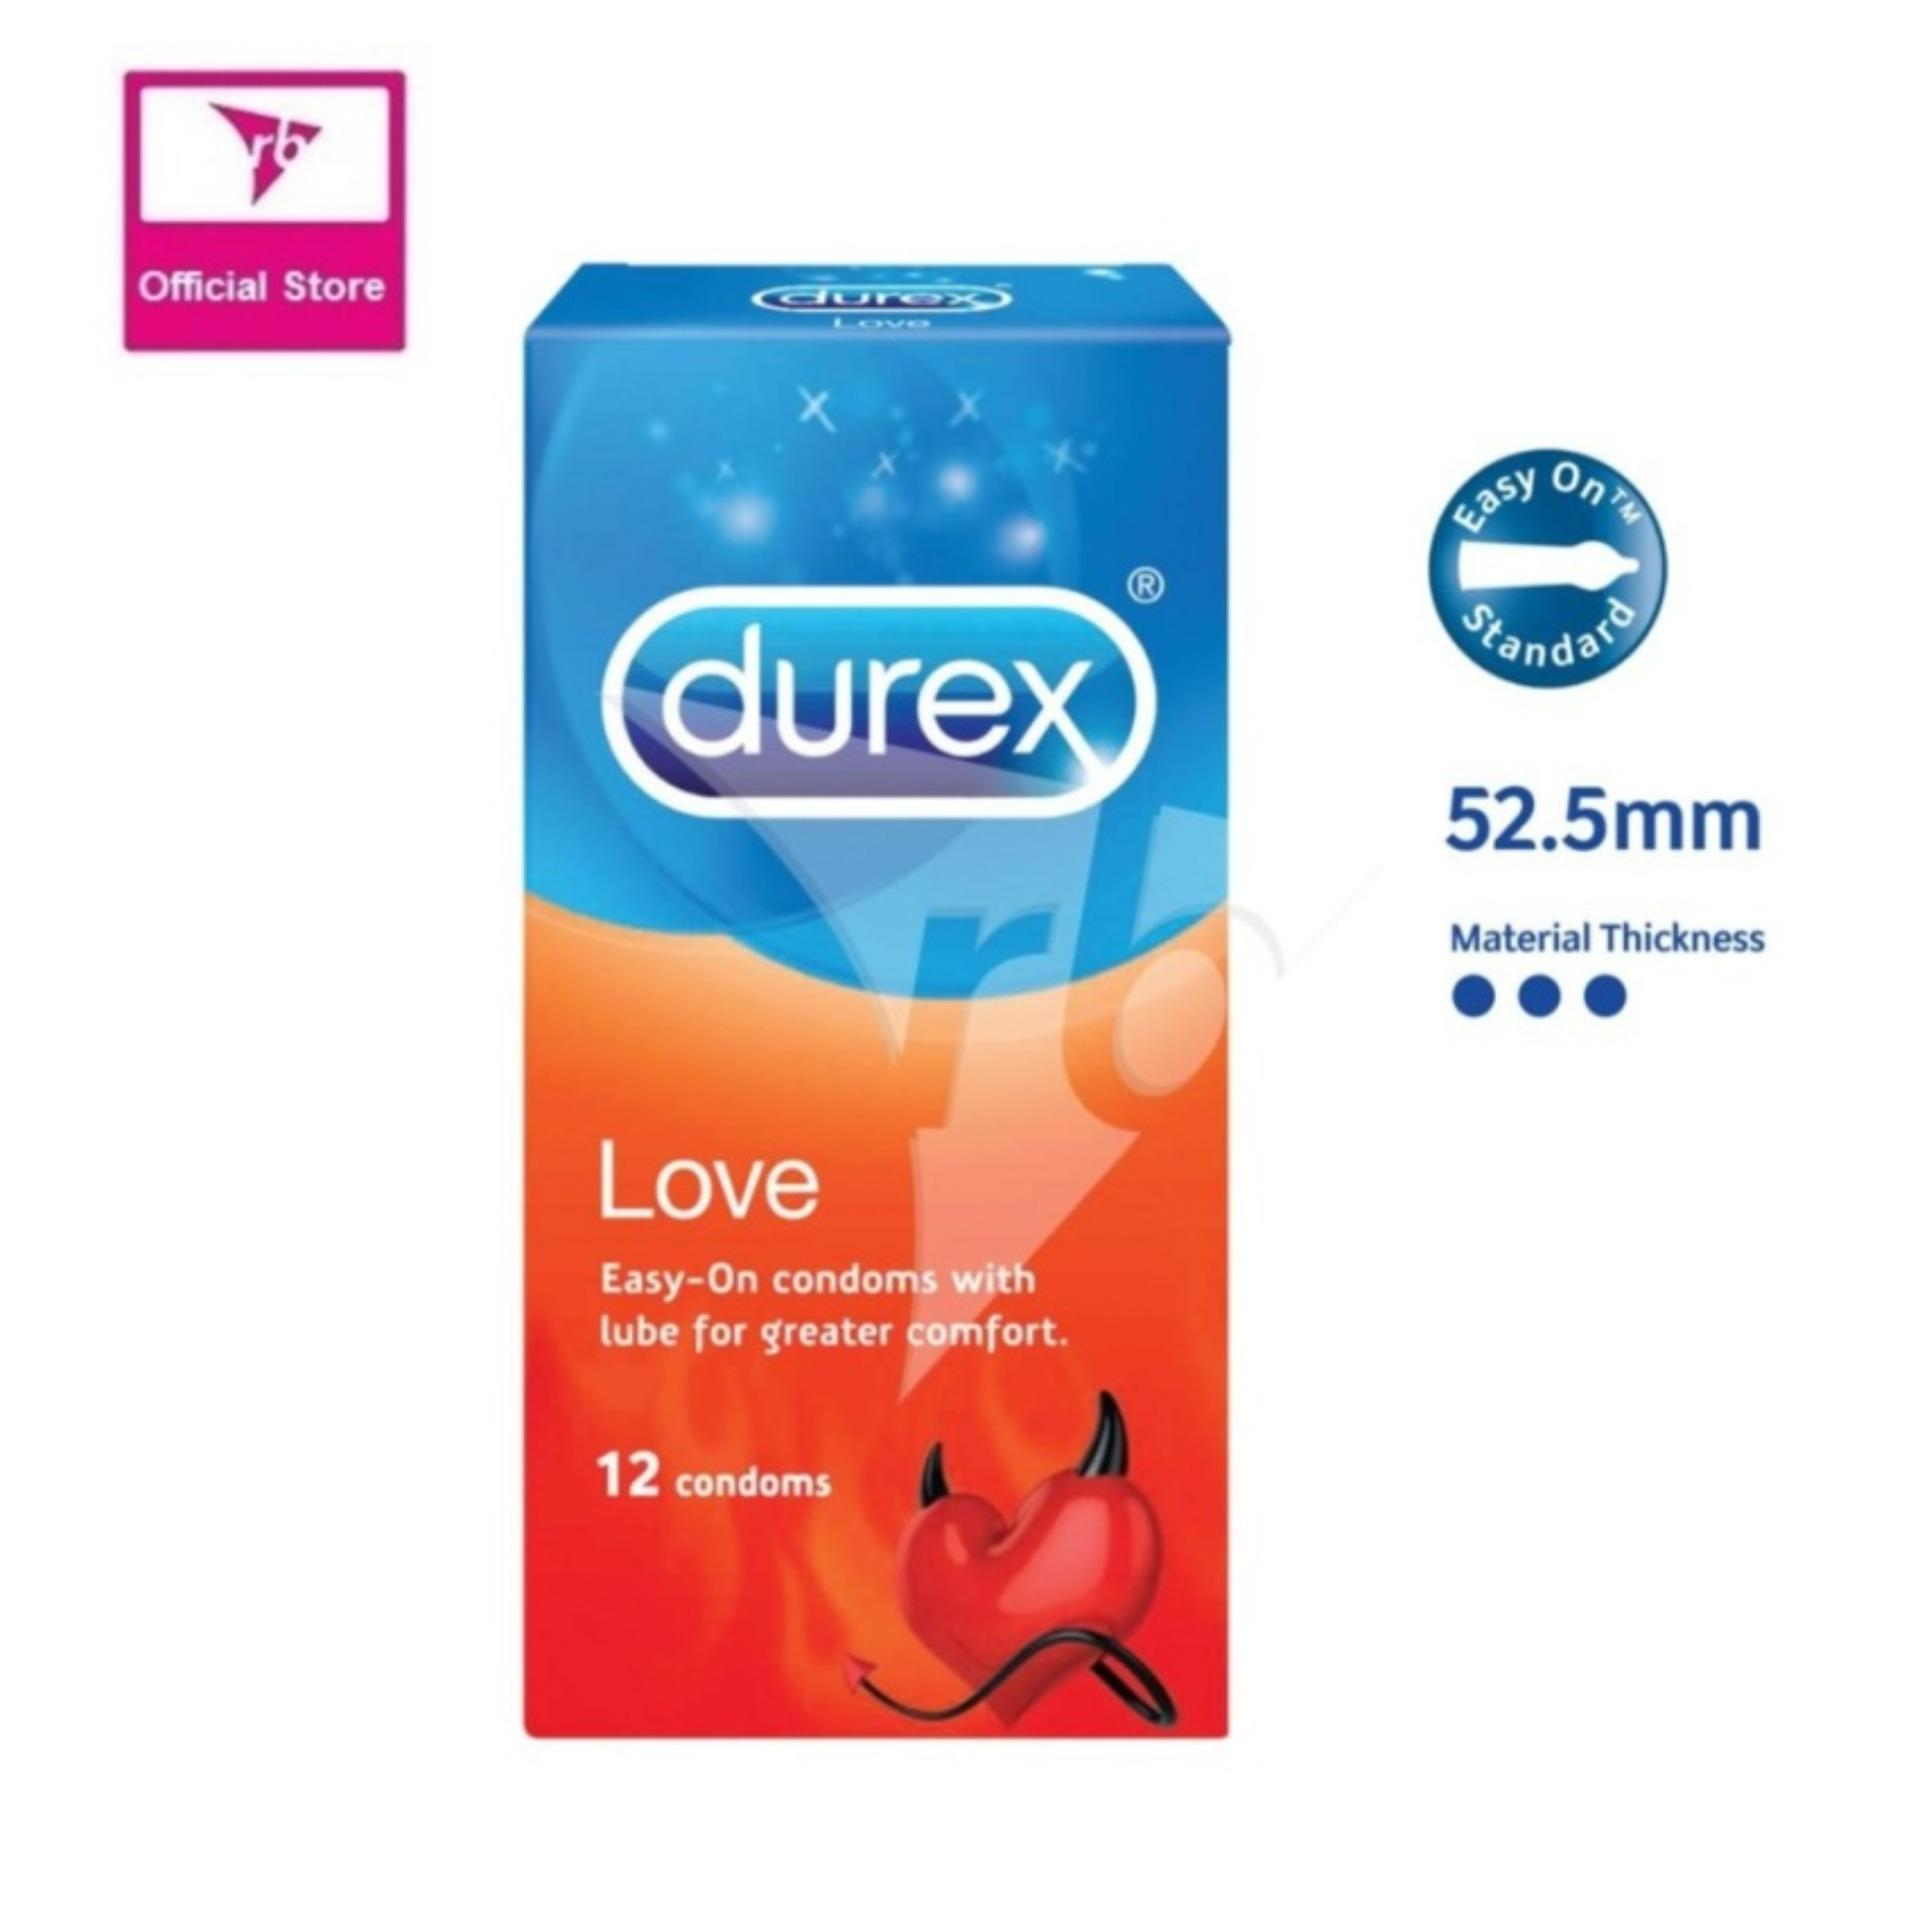 Durex Love Condoms 12S Lower Price